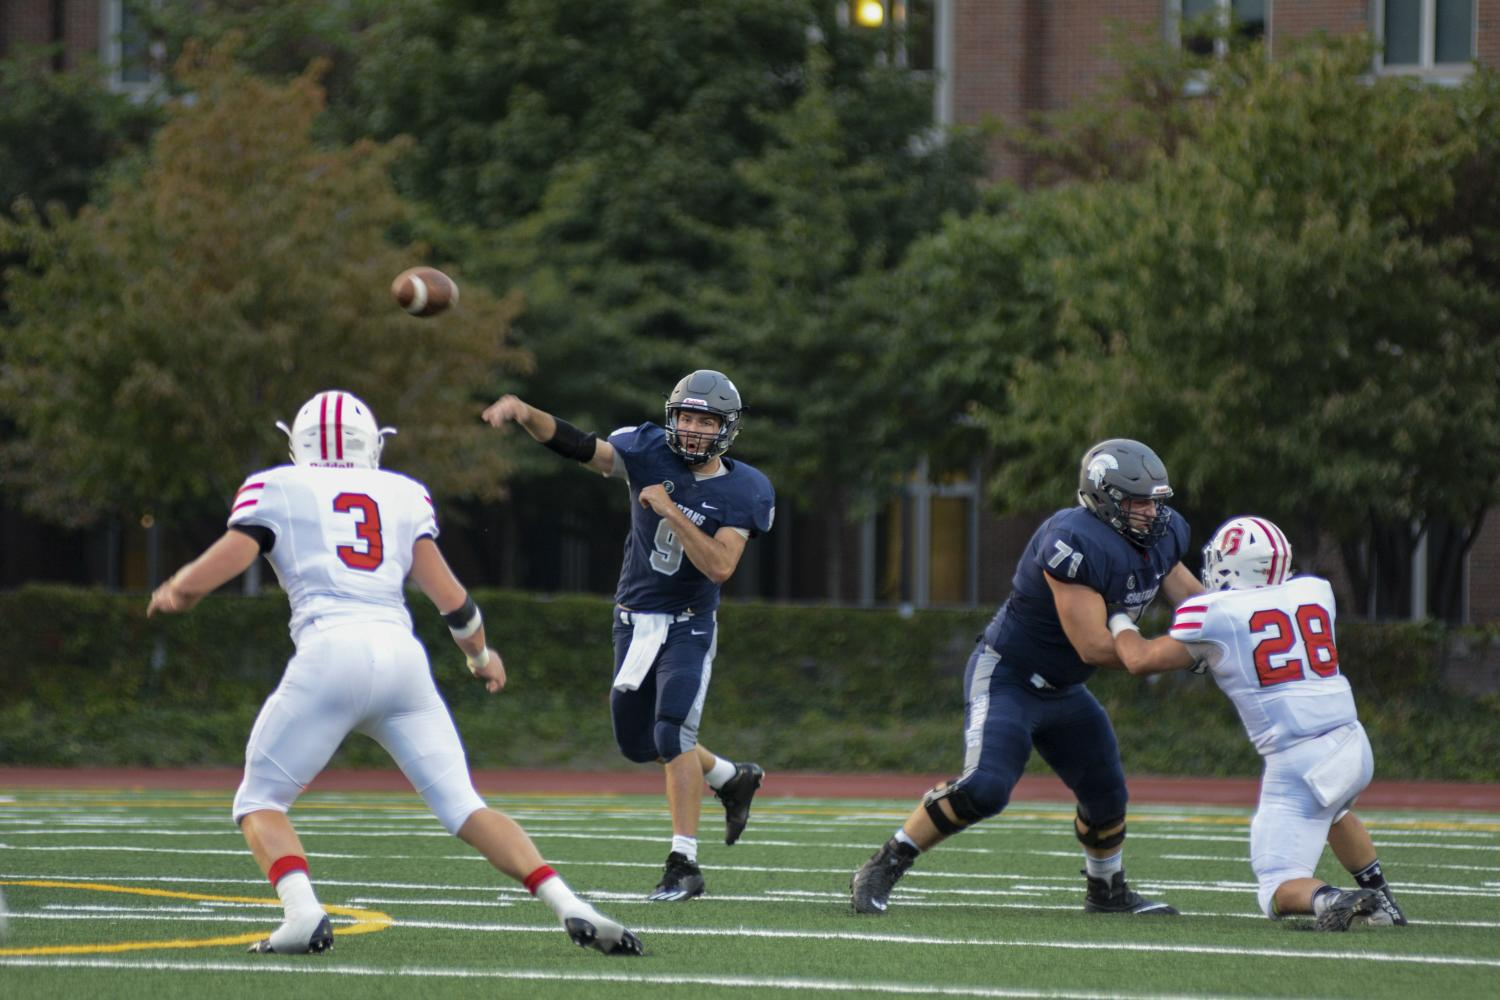 Fourth-year quarterback Rob Cuda threw for four touchdowns and ran for another in the Spartans' win over Saint Vincent College.